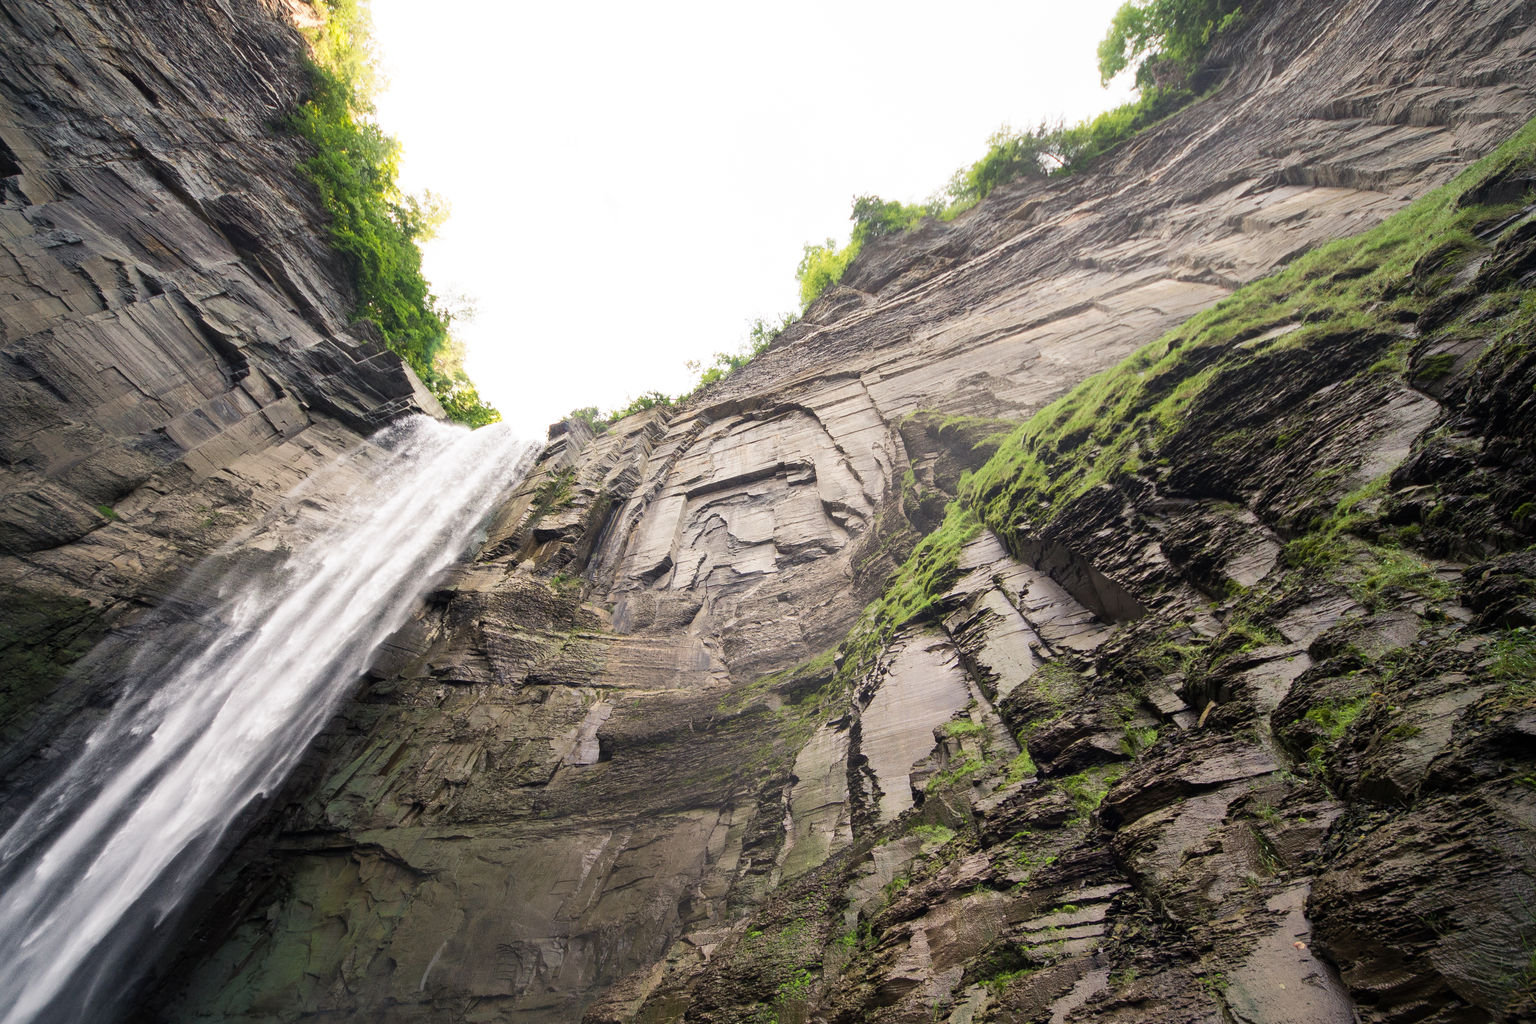 Taughannock Falls Waterfall & State Park Ulysses, NY Landscape Photos